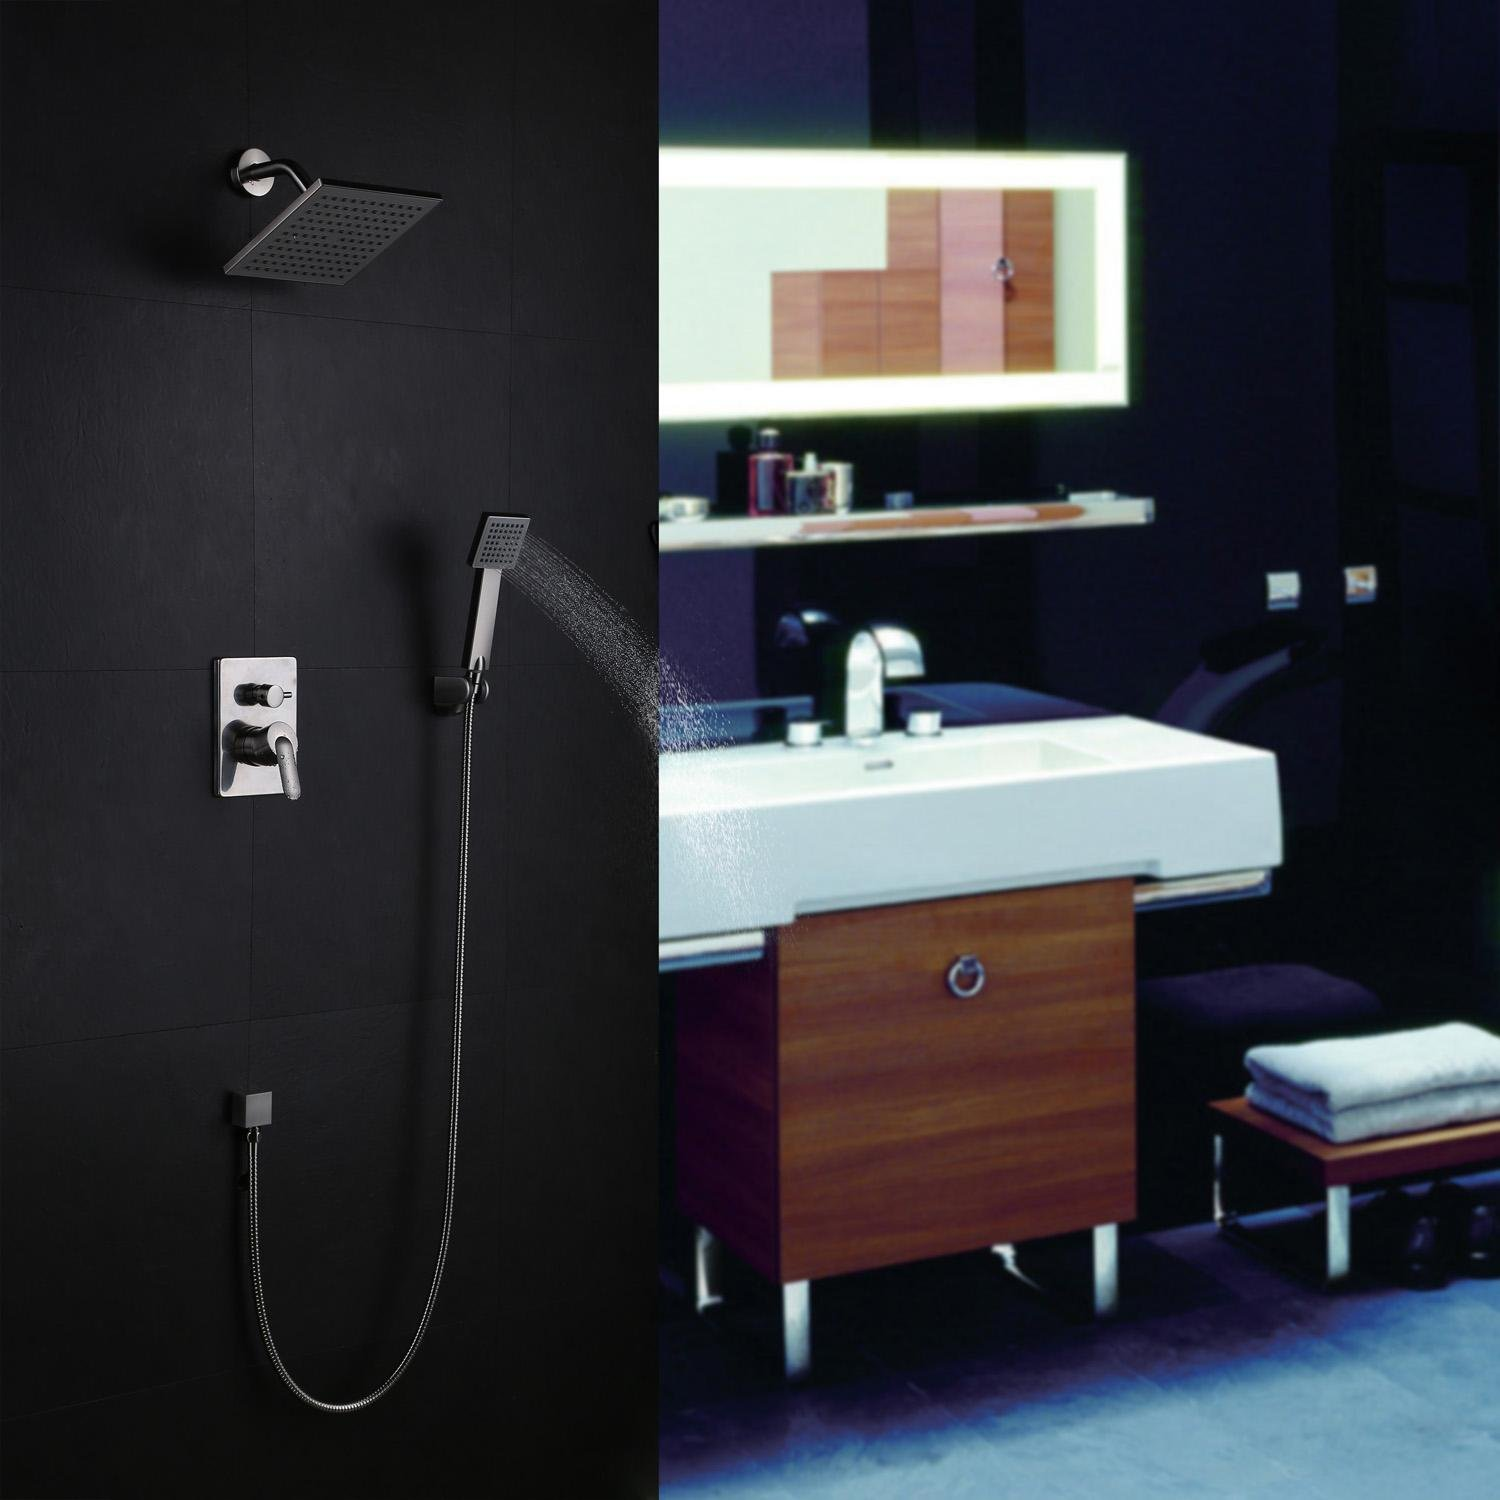 Bath Shower Faucet Set Complete Nickel Brushed Finish Wall Mount ...